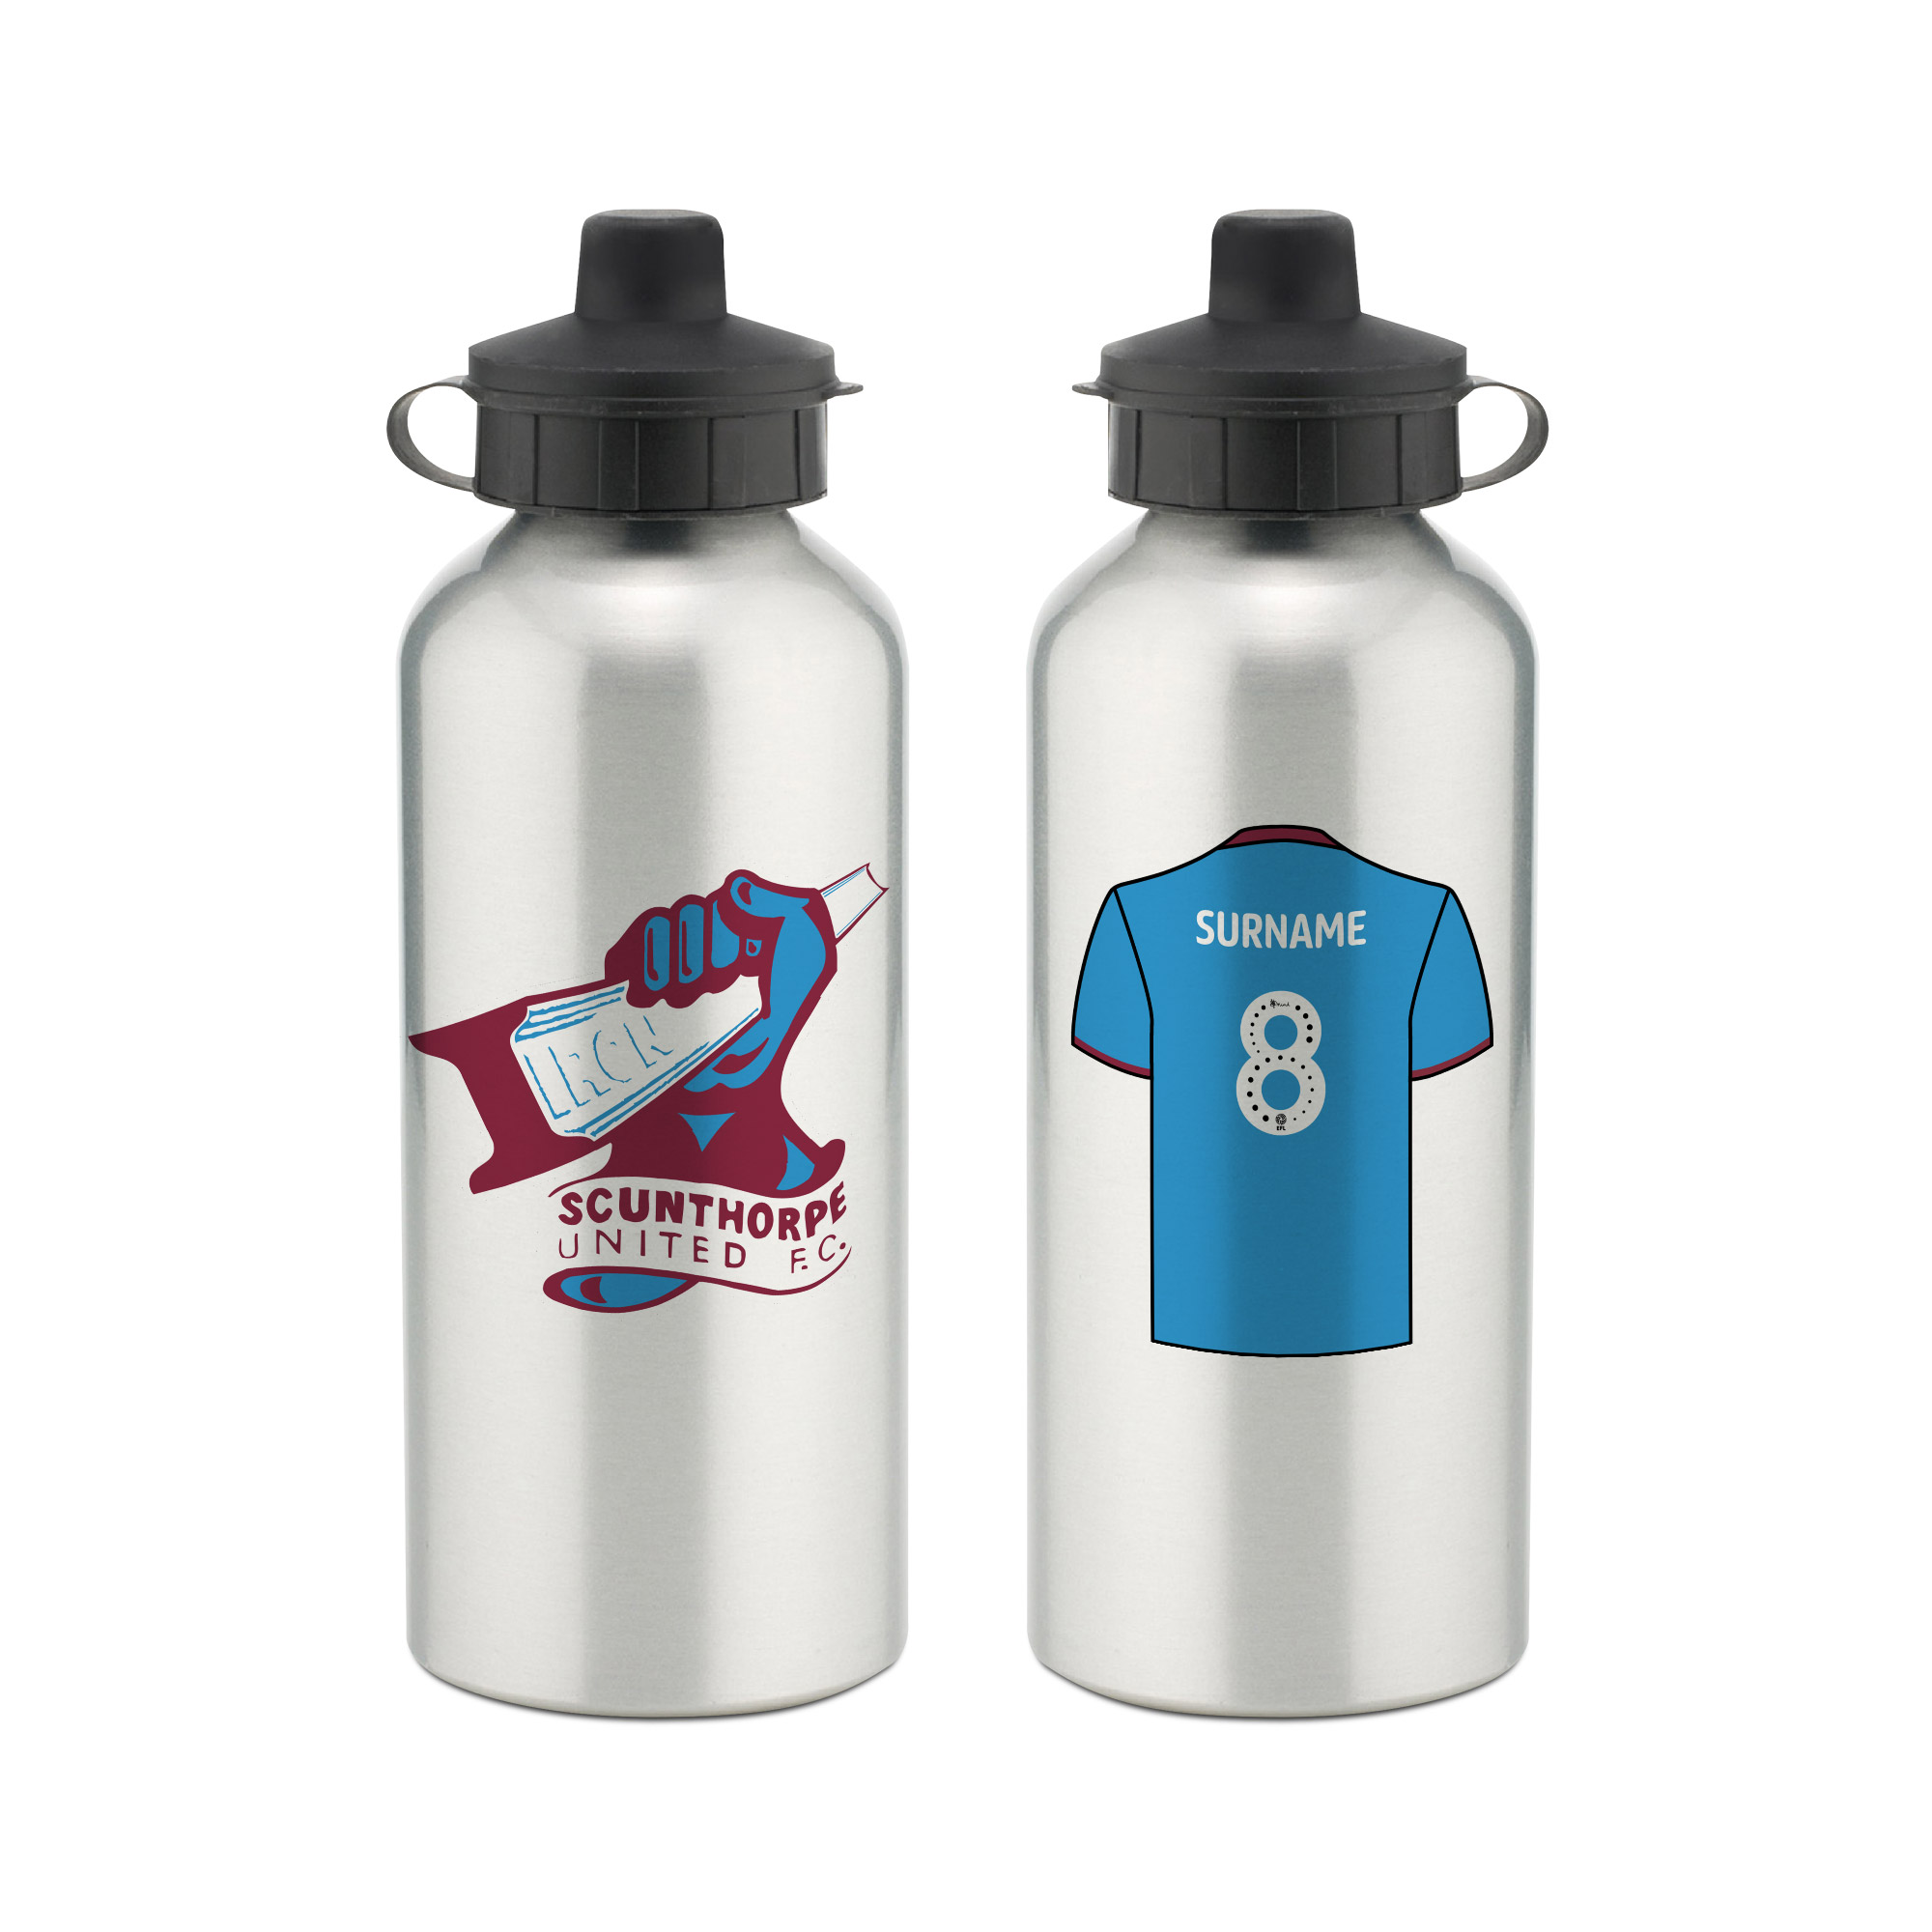 Scunthorpe United FC Aluminium Water Bottle